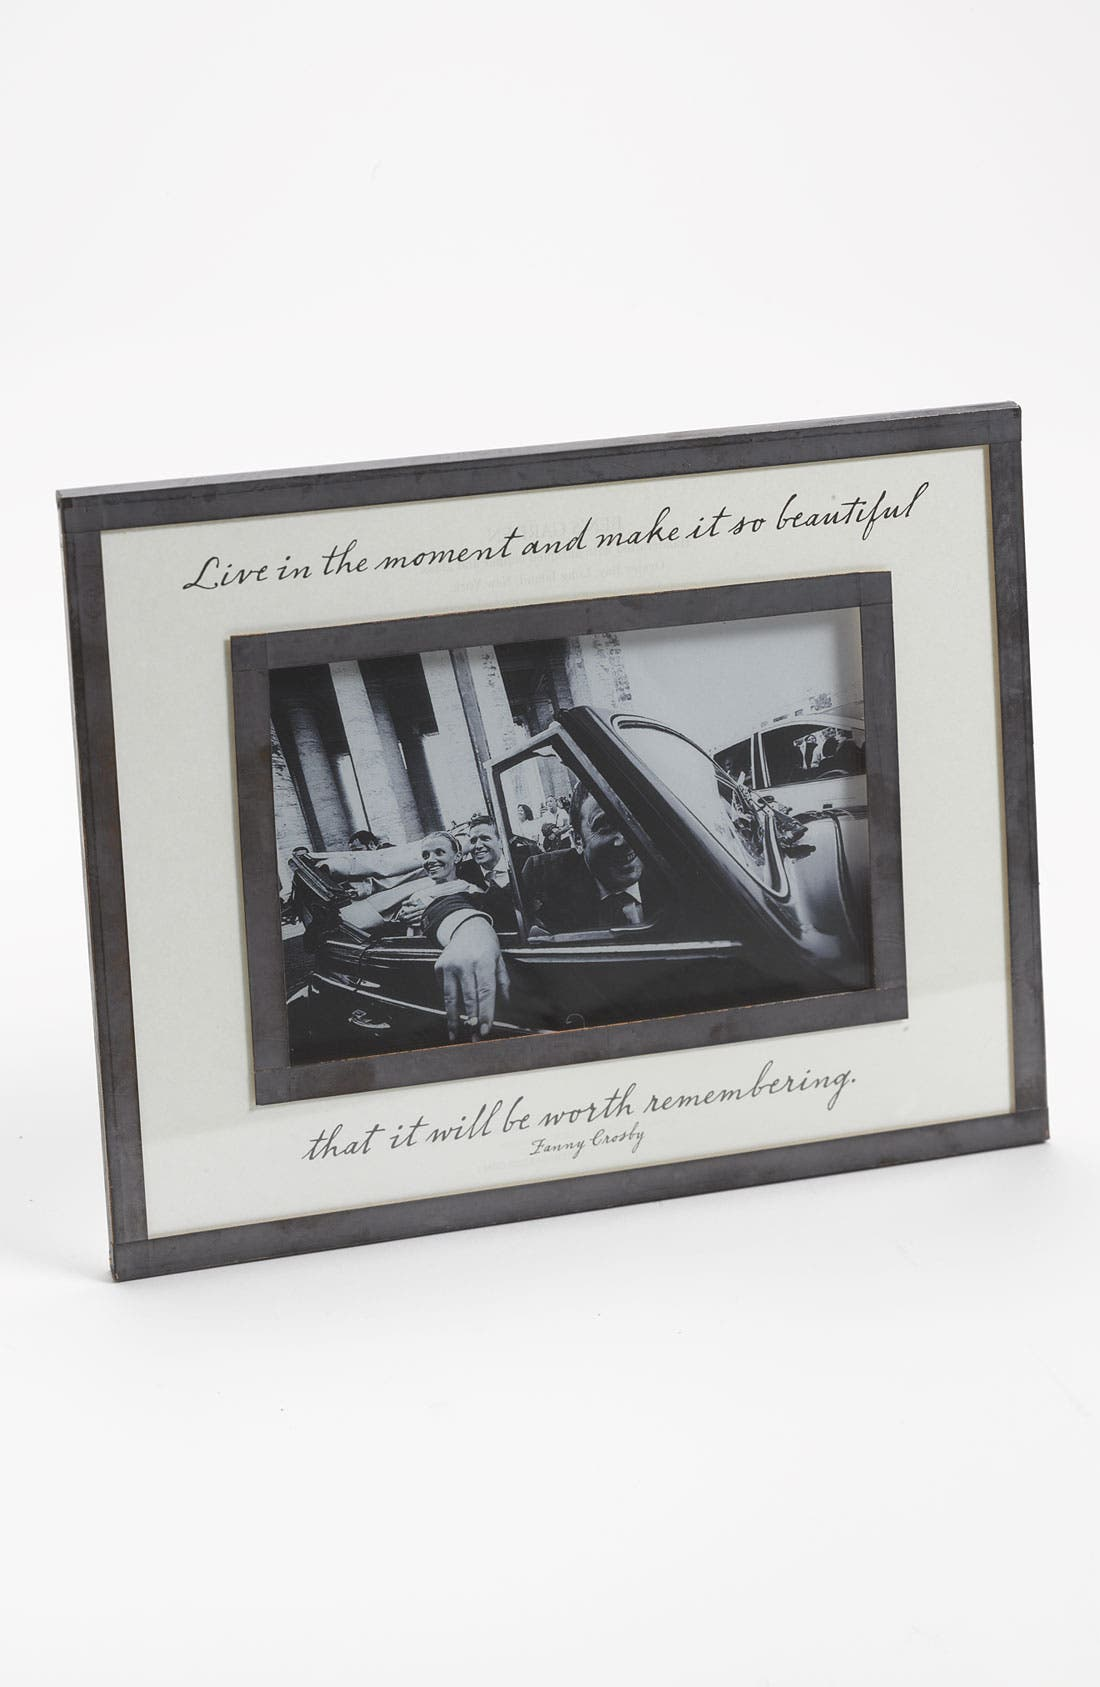 Alternate Image 1 Selected - Ben's Garden 'Live in the Moment' Picture Frame (4x6) (Nordstrom Exclusive)